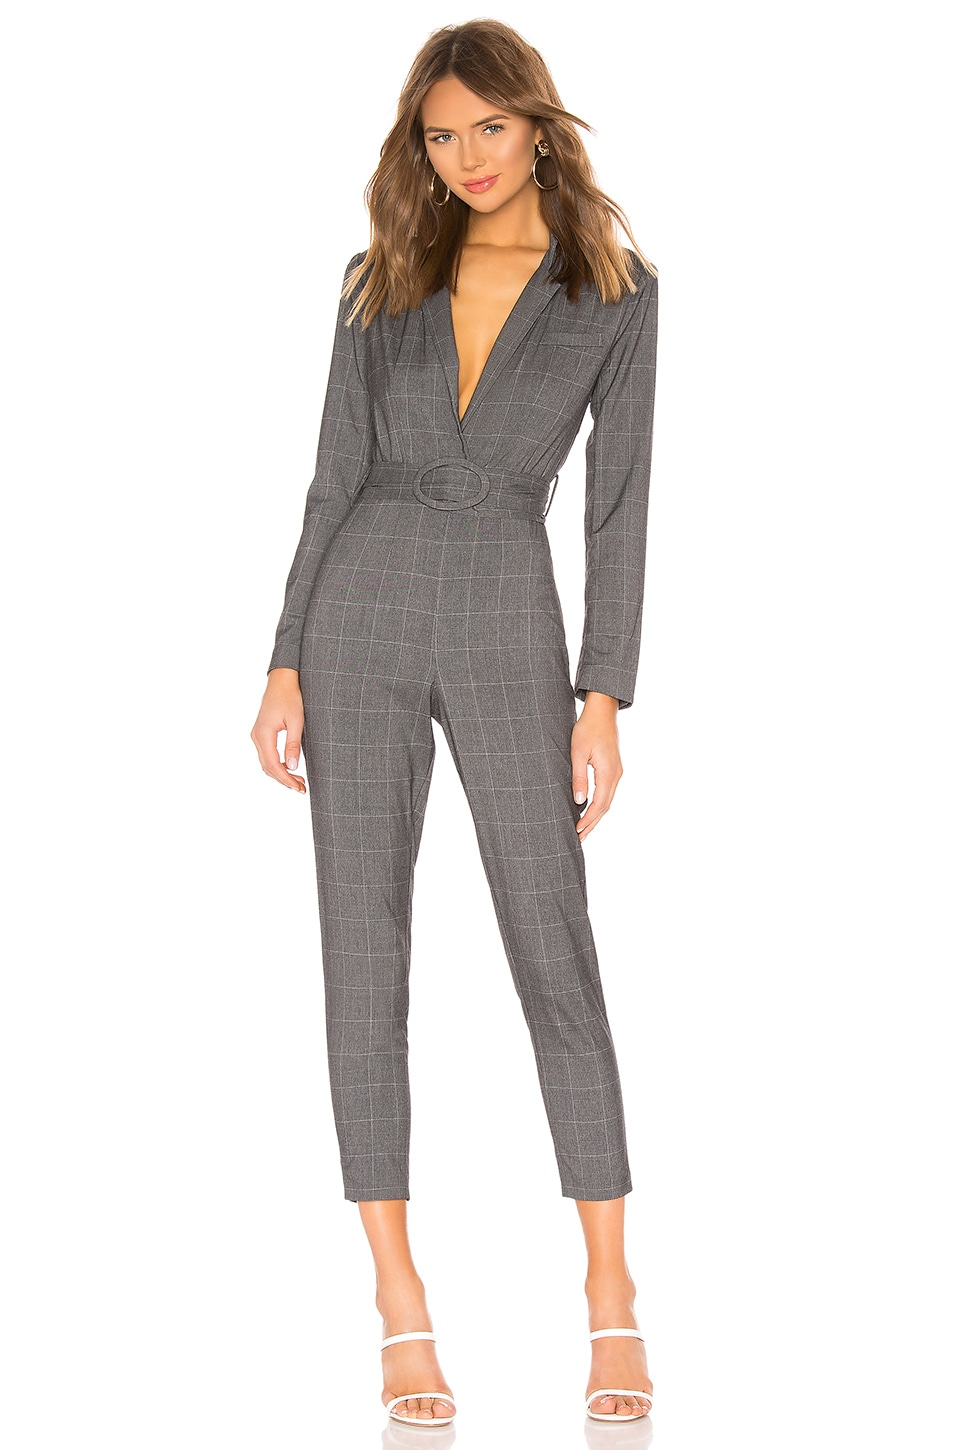 L'Academie the Lily Jumpsuit in Grey